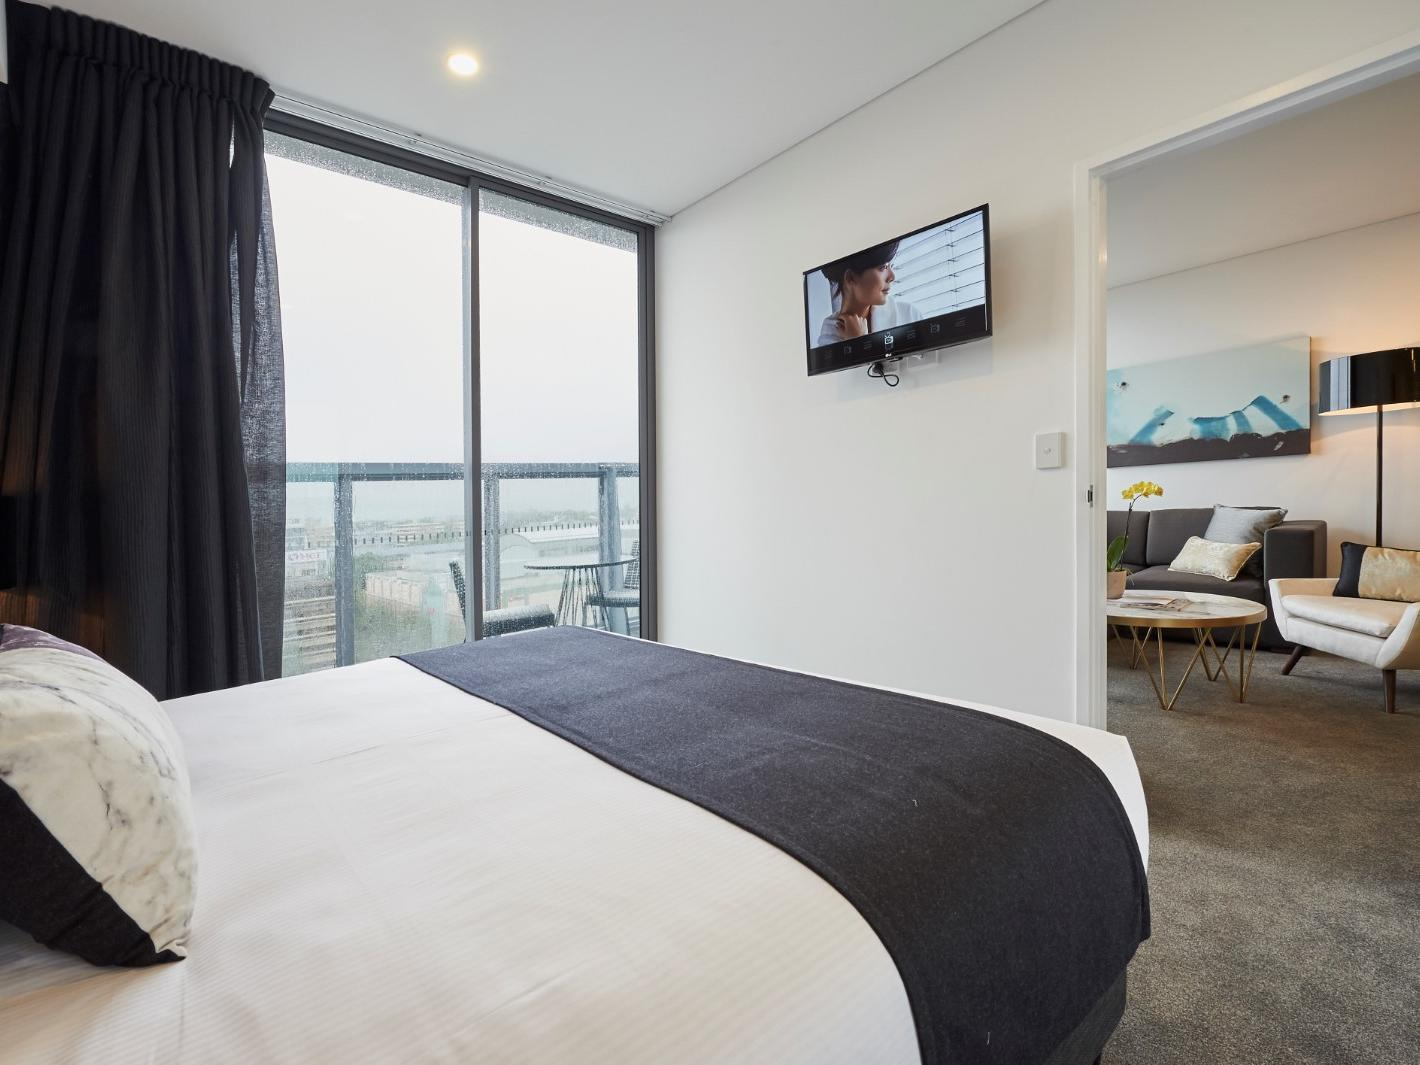 Terrace Bedroom at Silkari Suites Chatswood